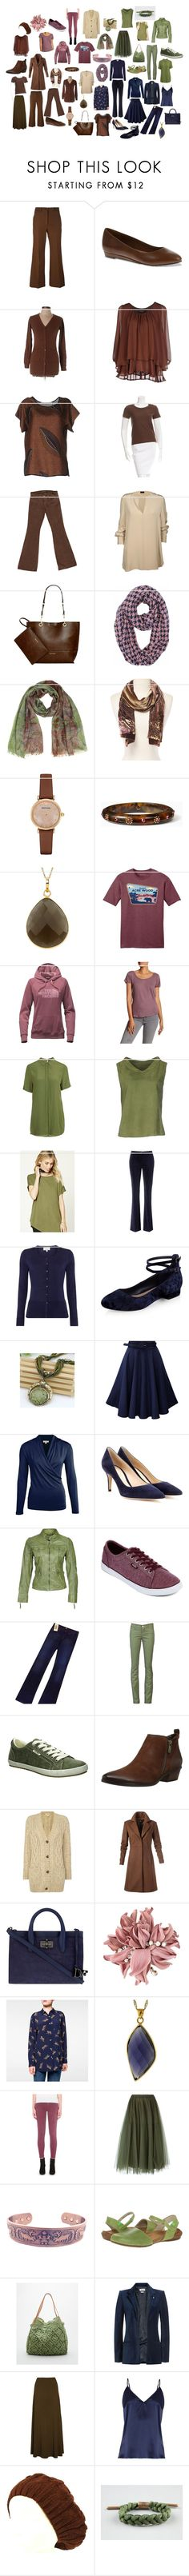 """""""Soft autumn set"""" by jennyclogs on Polyvore featuring Nina Ricci, Soft Style By Hush Puppies, Soallure, Shirtaporter, J Brand, Joseph, Calvin Klein, Emporio Armani, Kate Spade and The North Face"""